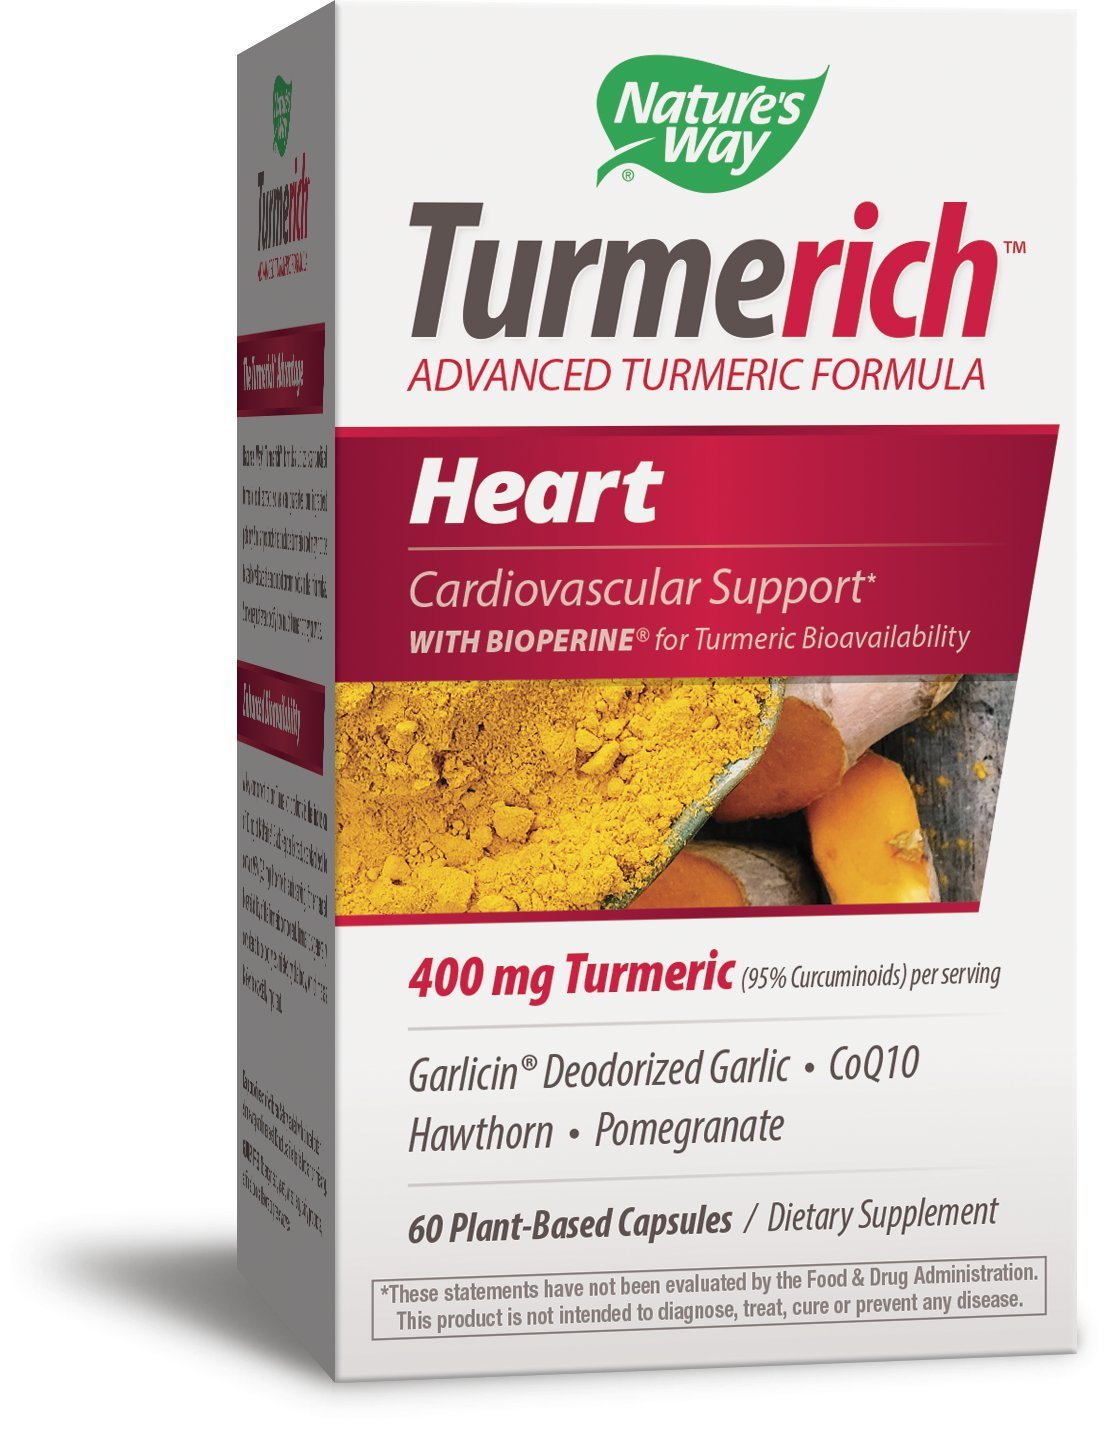 Nature's Way Turmerich Advanced Turmeric Formula for Cardiovascular Support*; 400 mg Turmeric per Serving; Garlic, CoQ10, Hawthorn, Pomegranate, Black Pepper Extract; Vegetarian Capsules; 60 Count